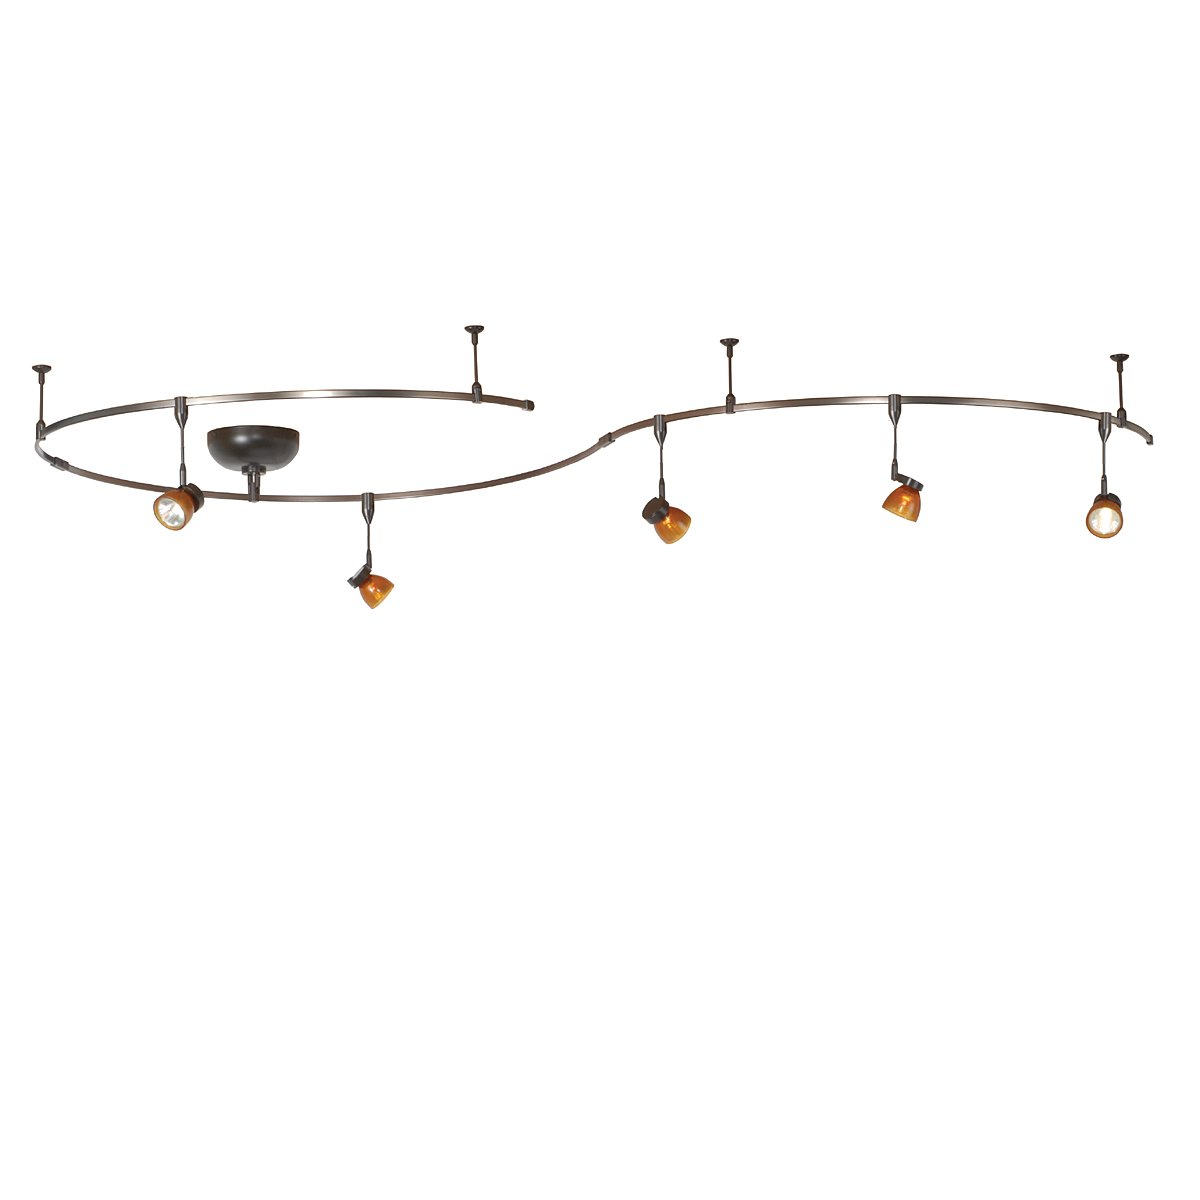 Track lighting fixture On WinLights.com